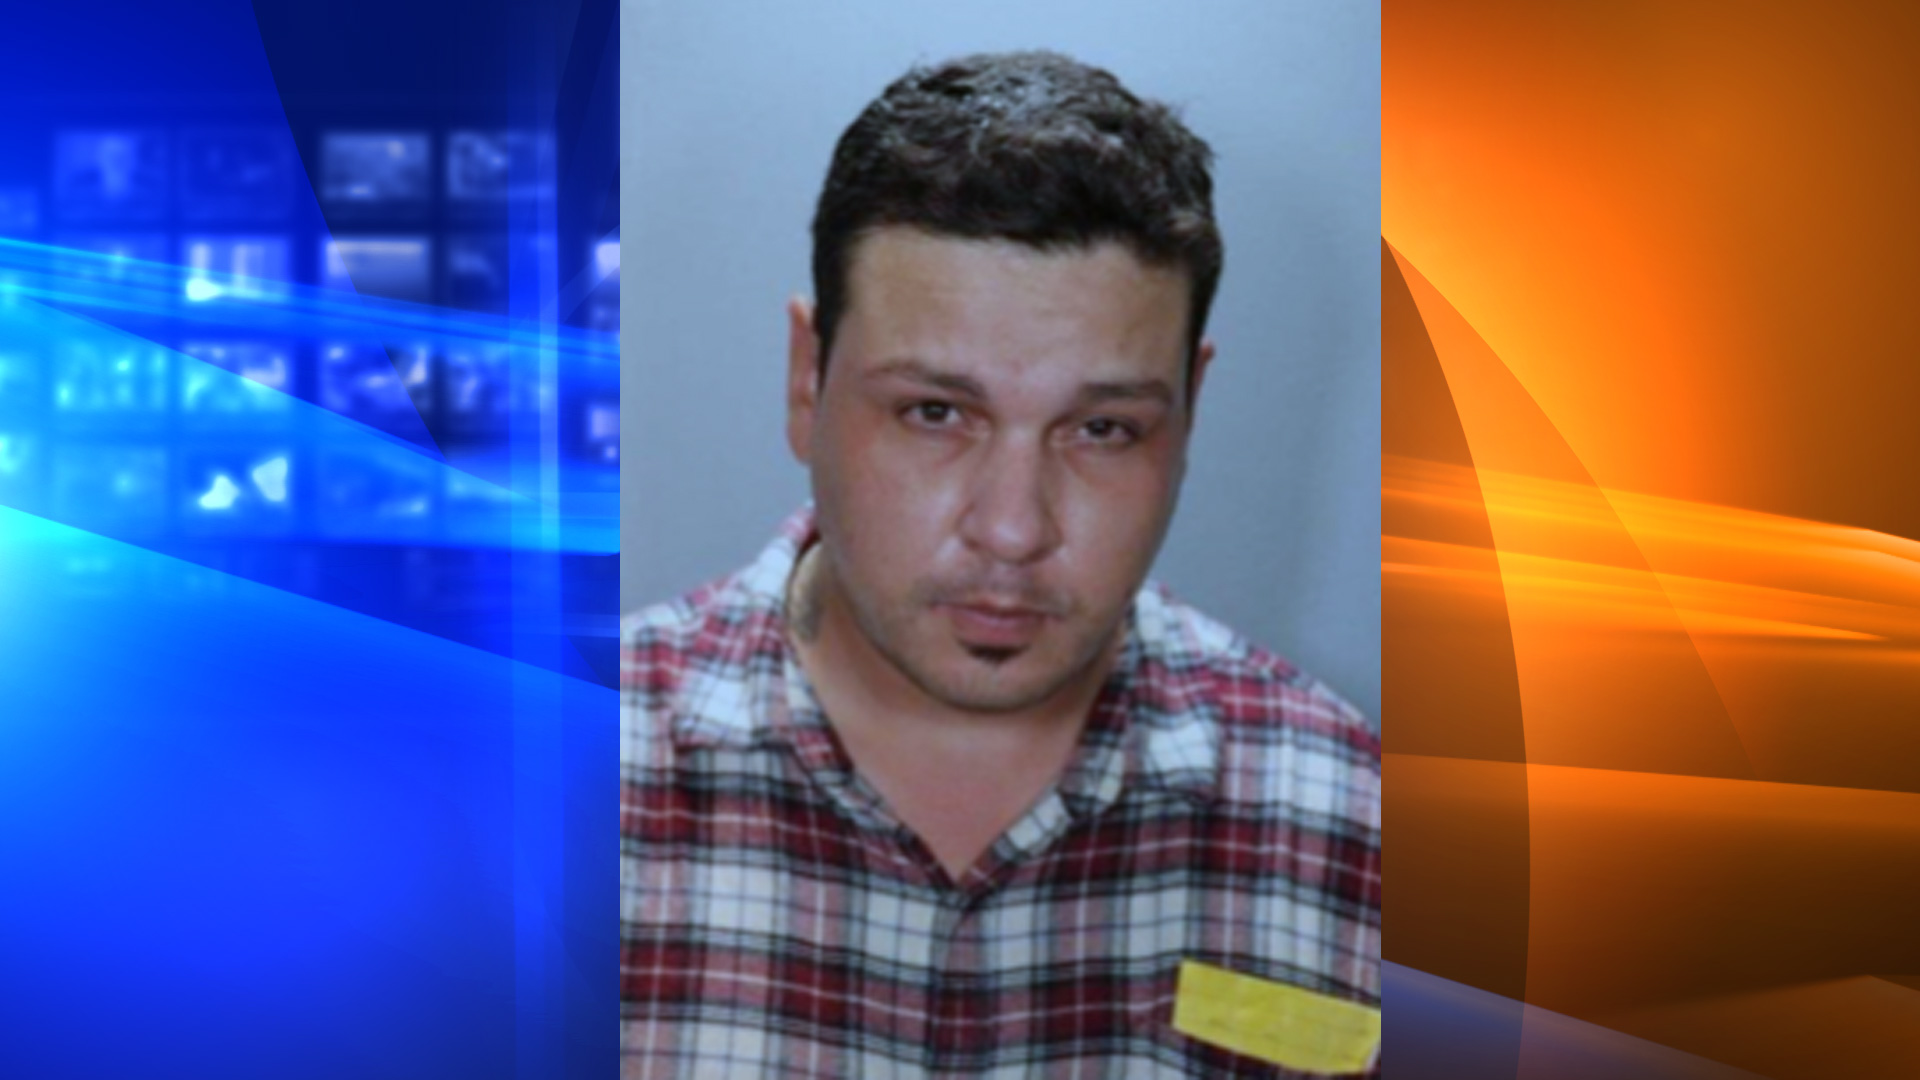 Joshua Russell Callihan is seen in a photo released by the Tustin Police Department on Sept. 14, 2020.